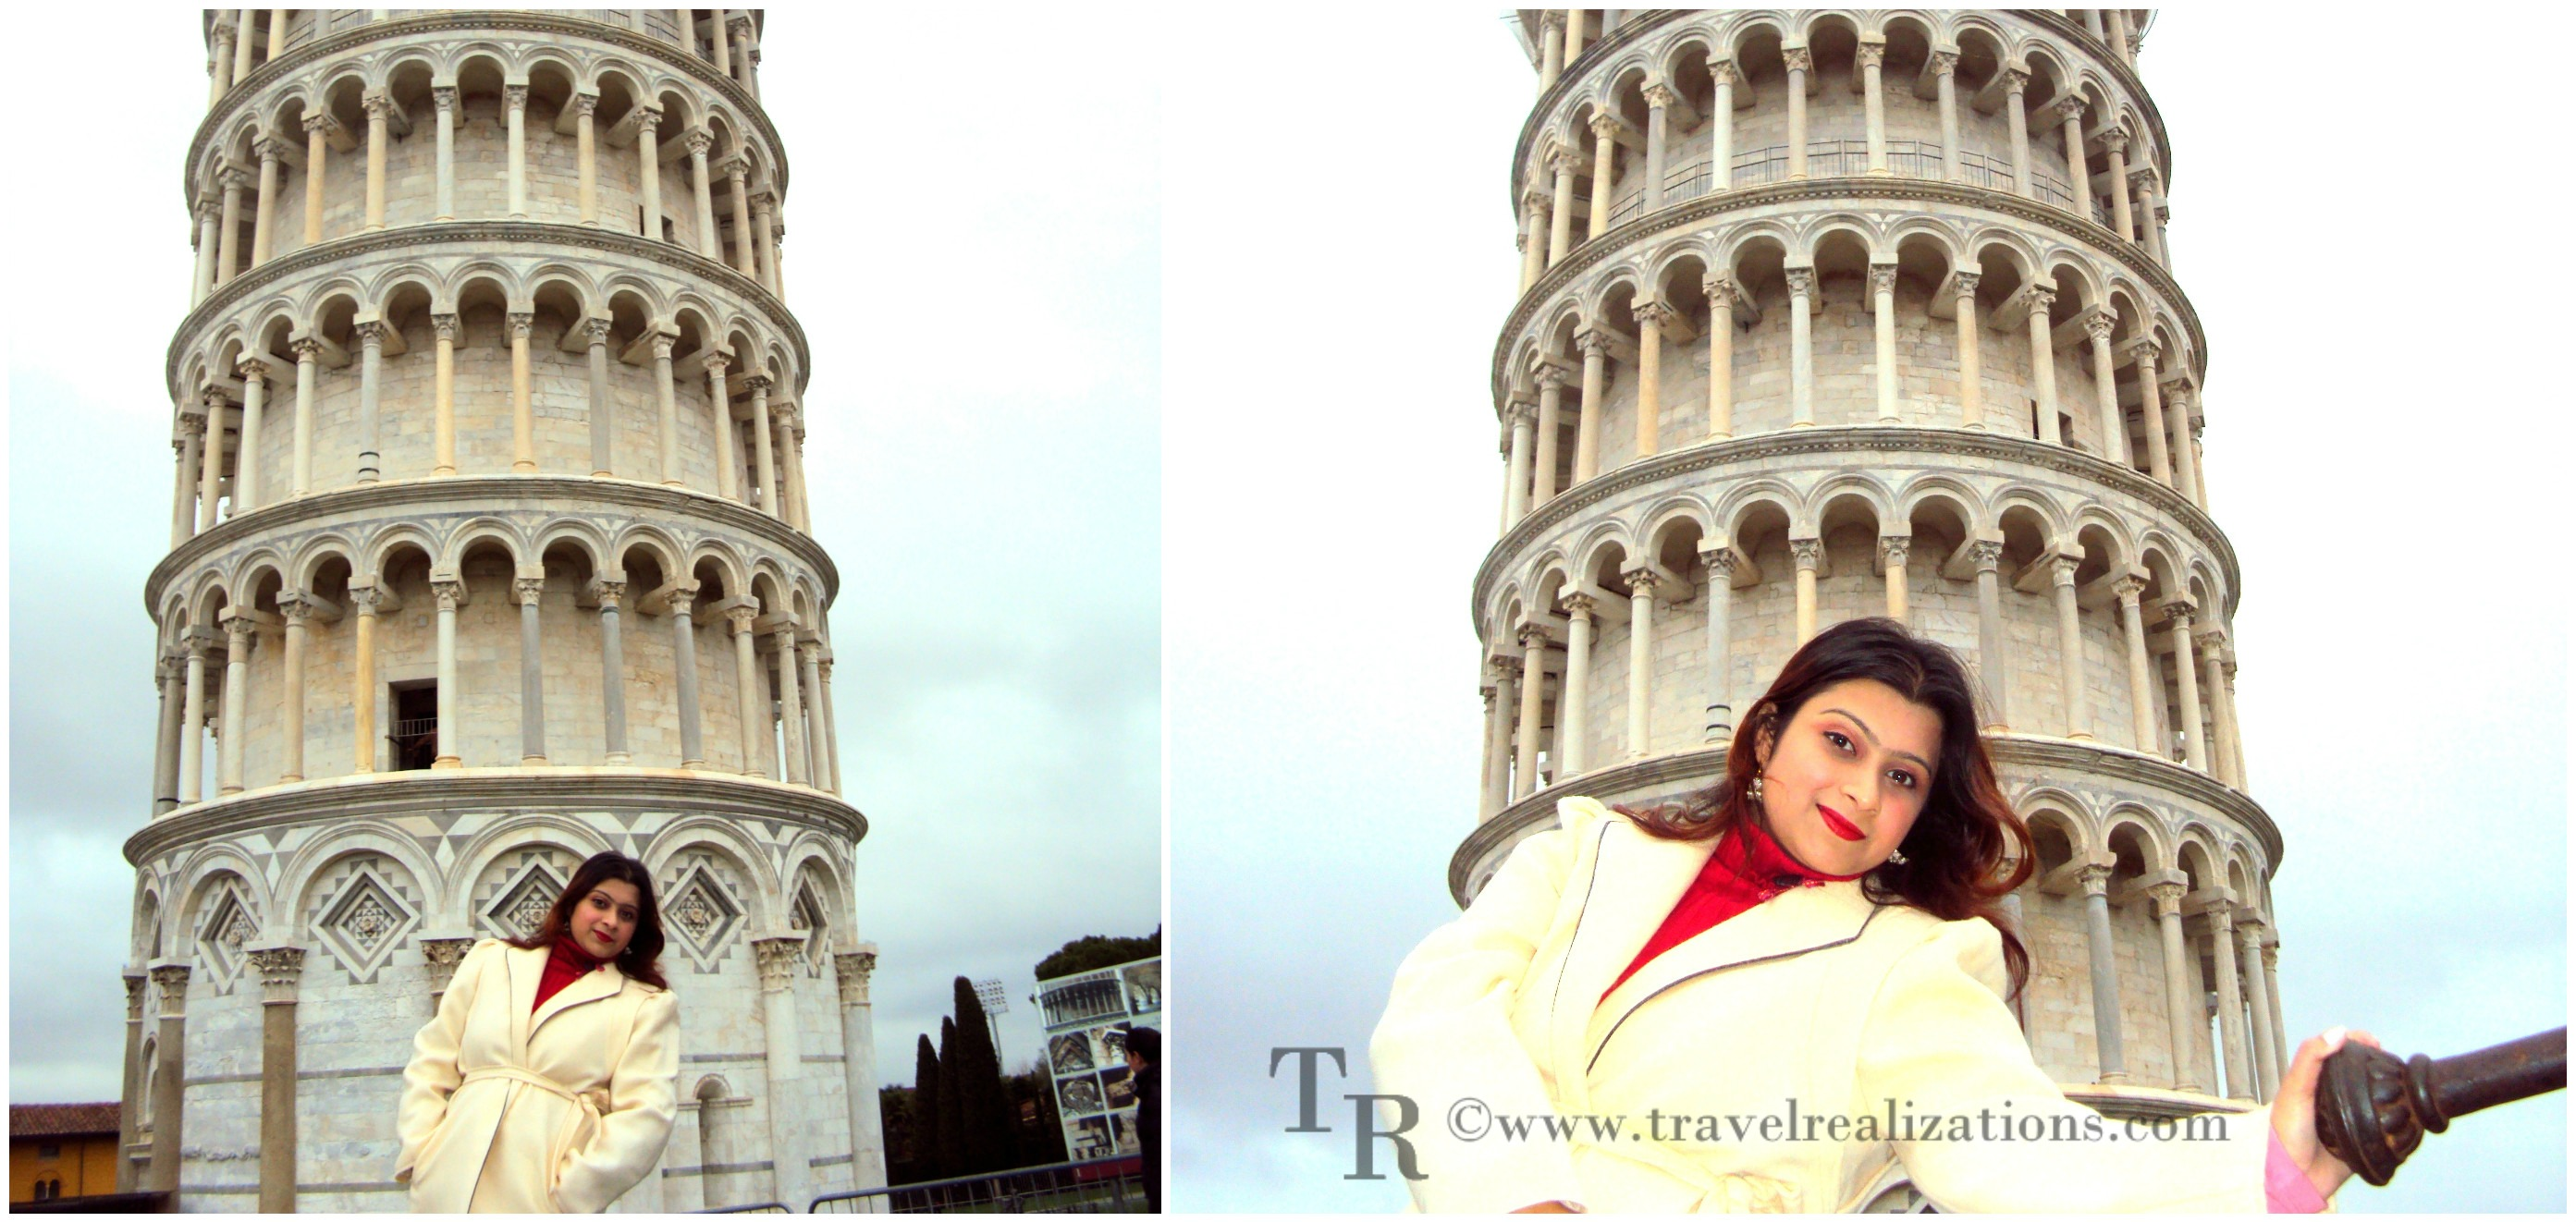 Leaning Tower of Pisa, Italy!